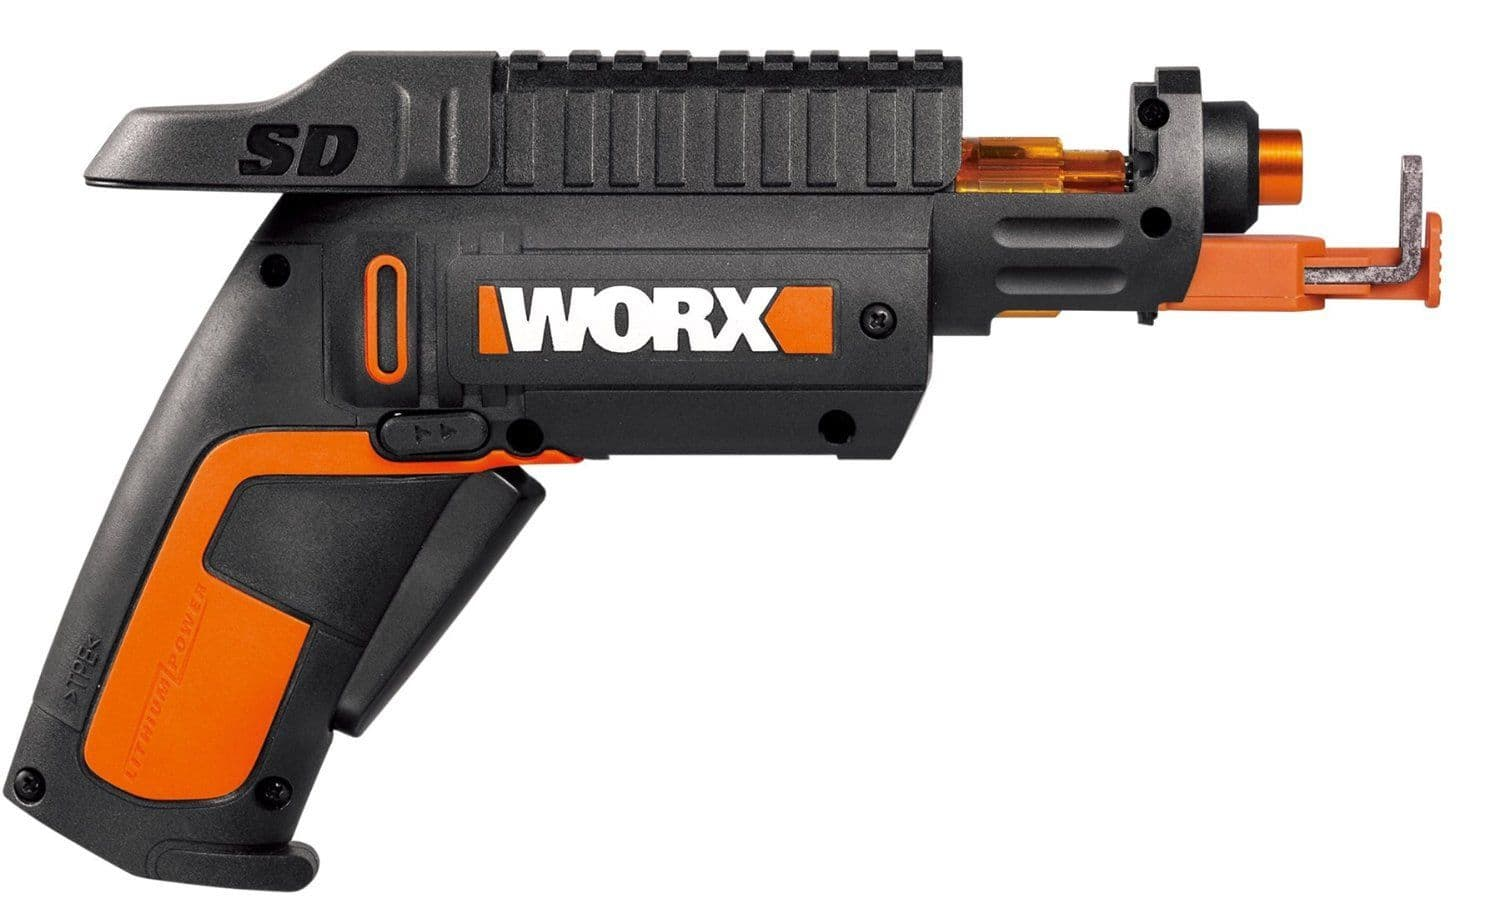 WORX SD Cordless Screw Driver with Screw Holder $19.99